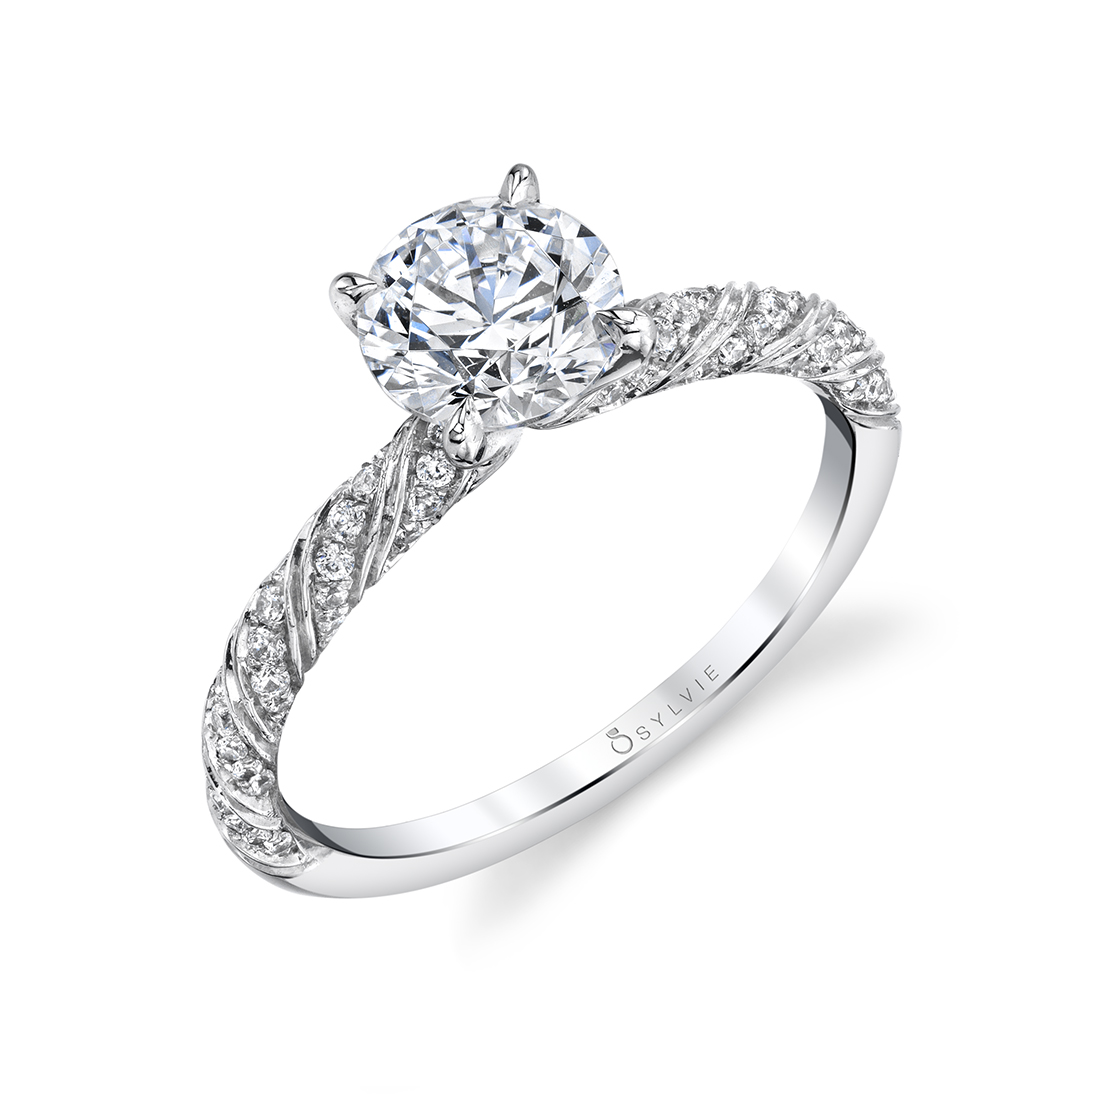 Side view of a Unique engagement ring